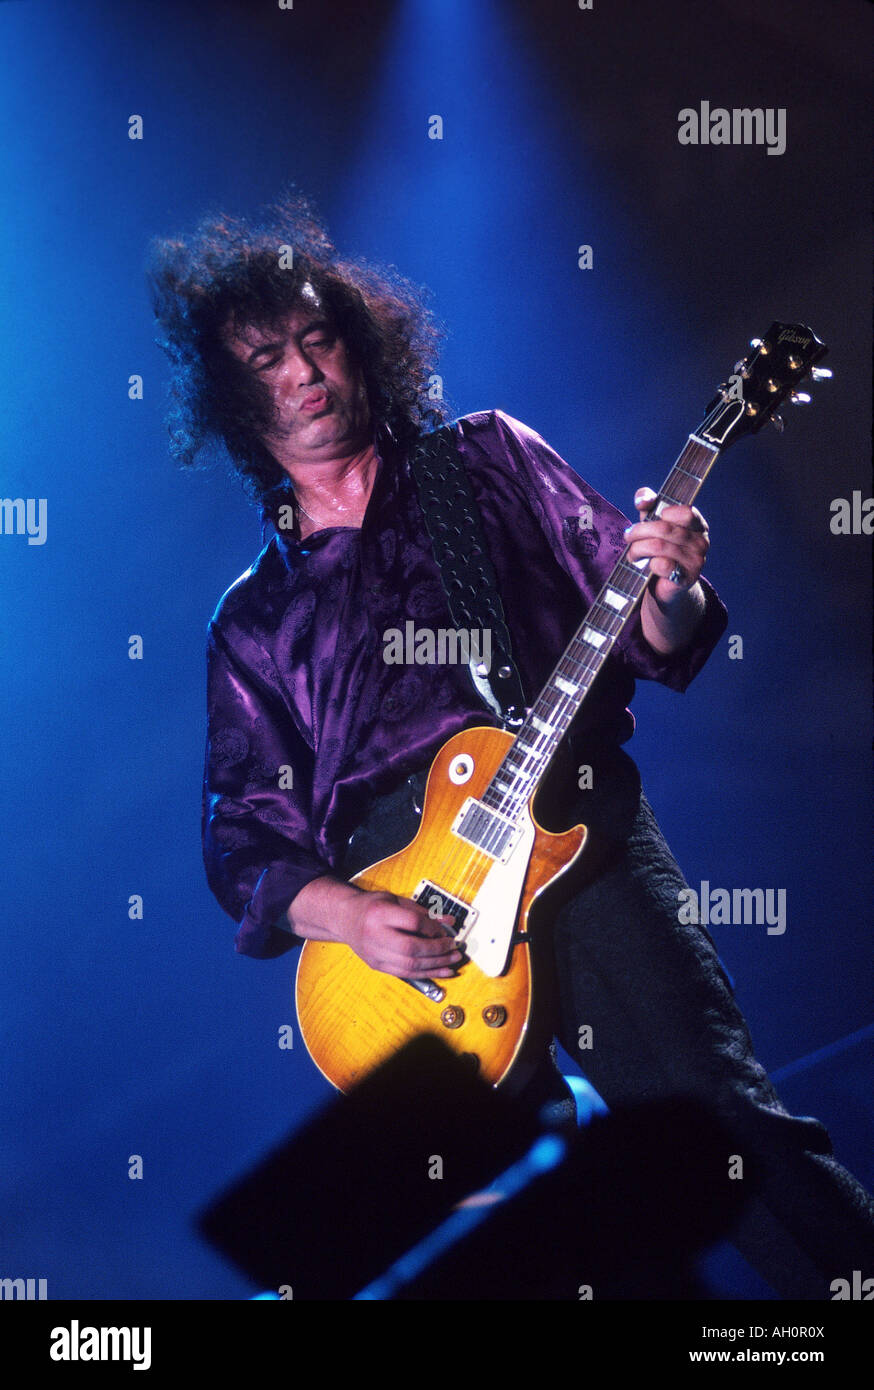 Photo Page: UK Guitarist With His Les Paul Guitar Stock